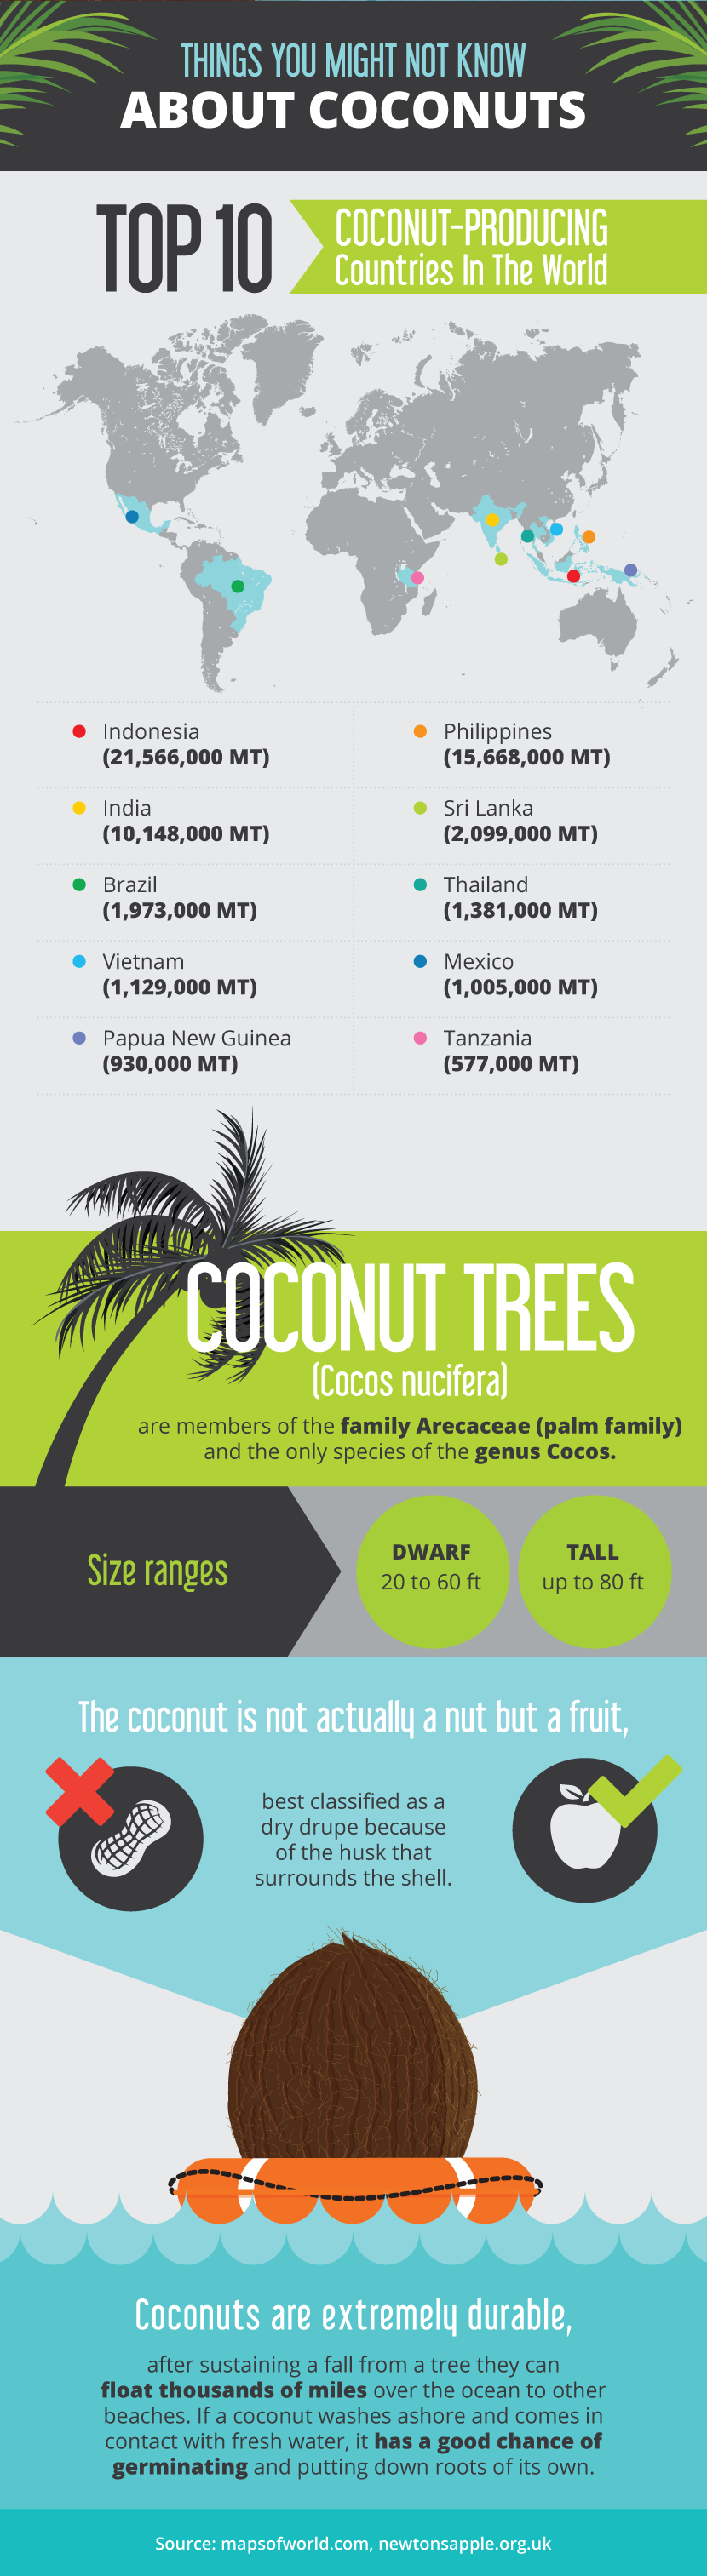 Facts About Coconuts - Unique Ways to Incorporate Coconuts Into Your Life